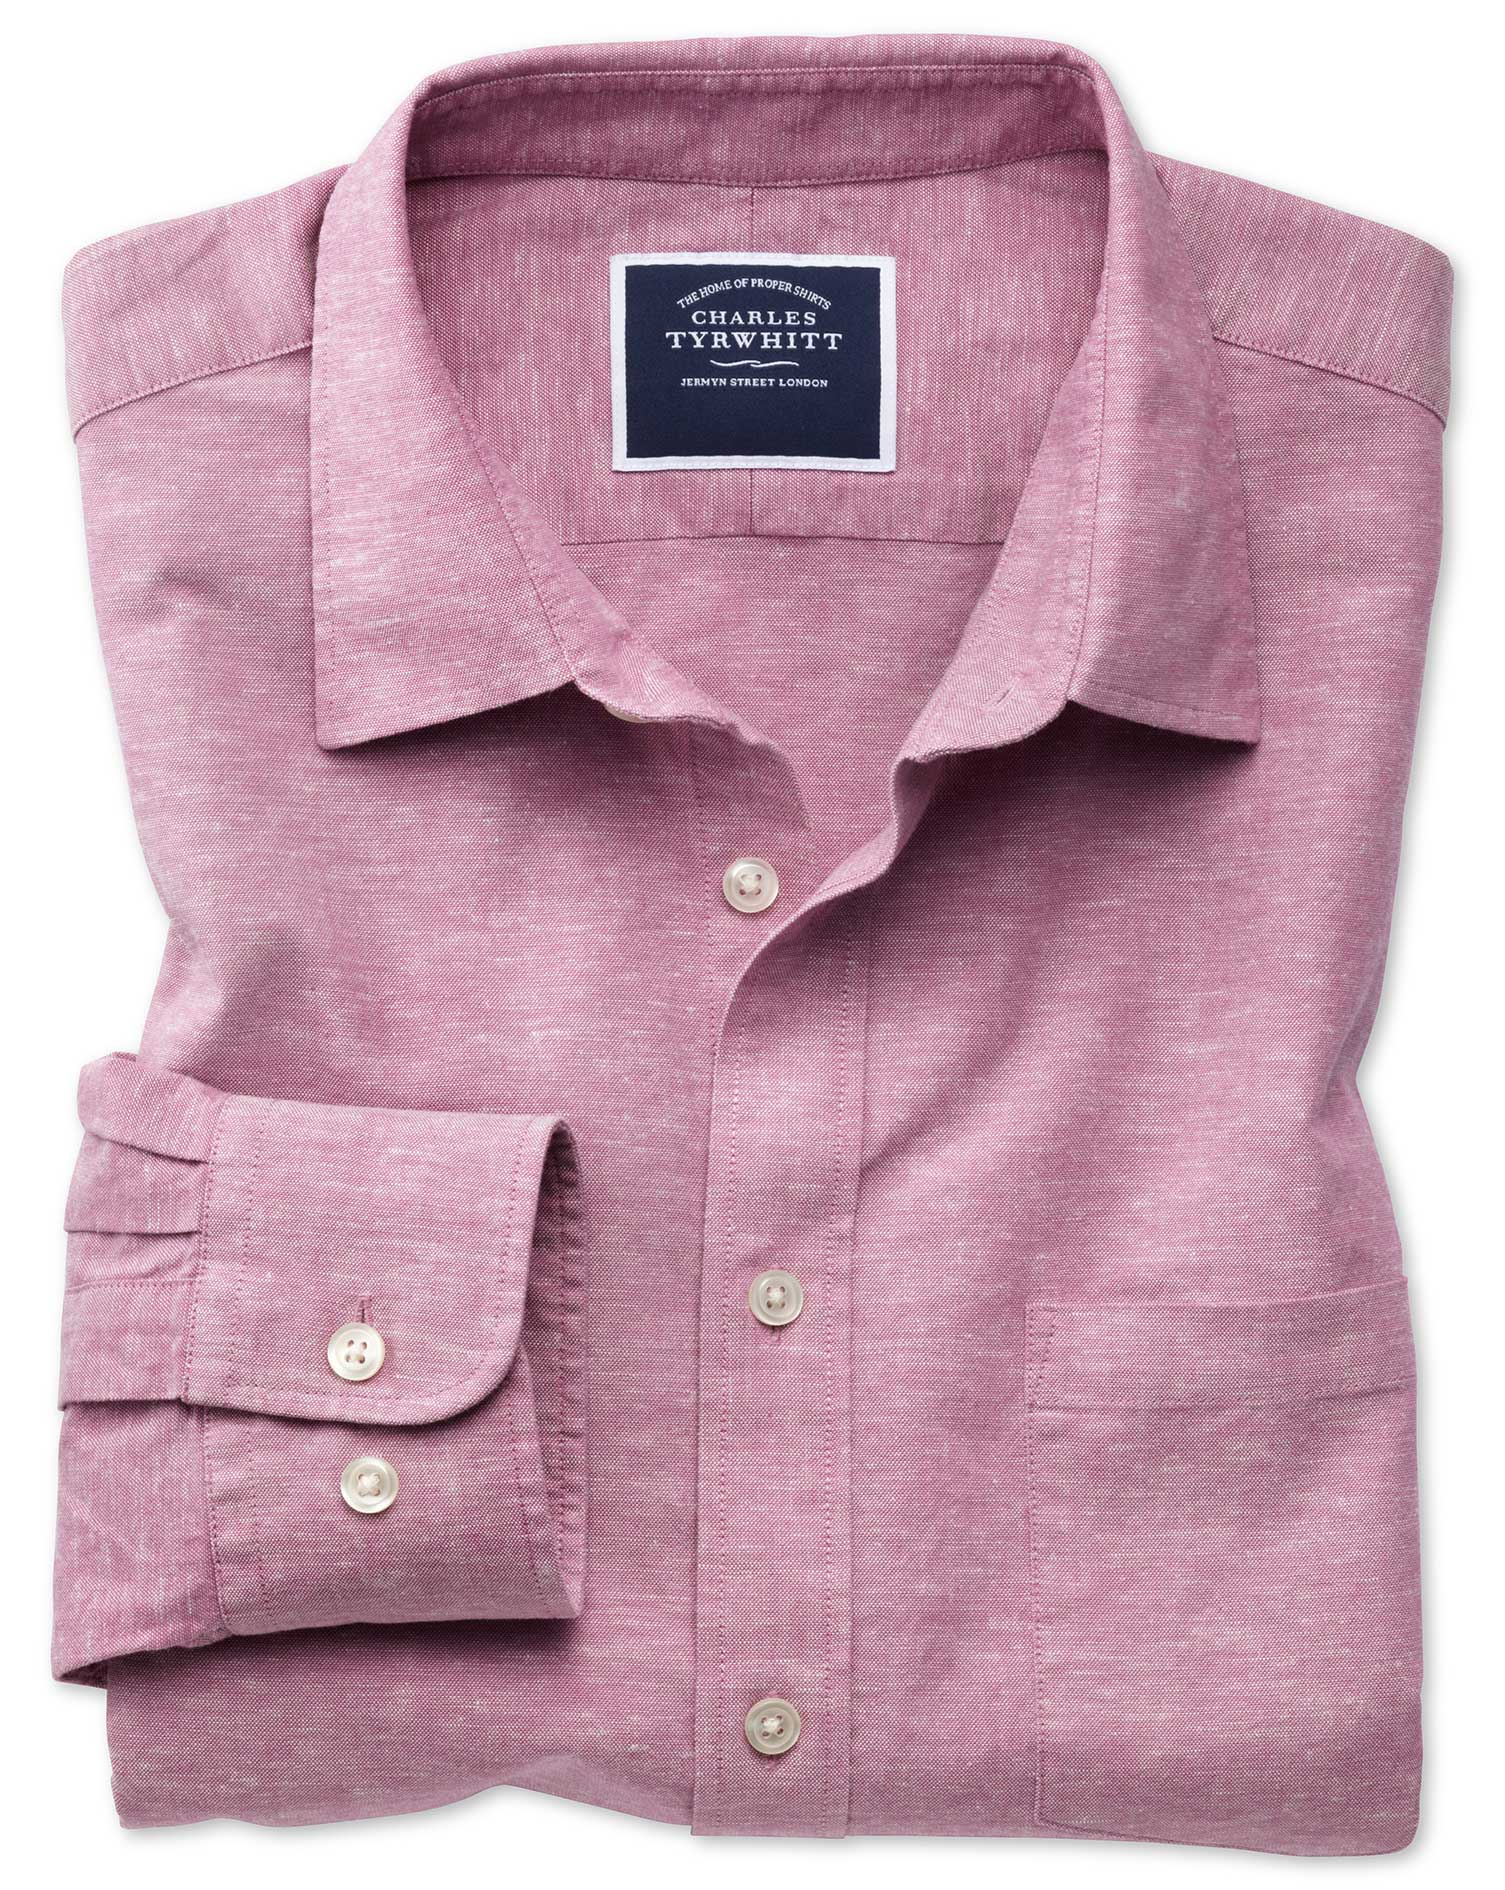 Slim Fit Cotton Linen Pink Plain Shirt Single Cuff Size Medium by Charles Tyrwhitt